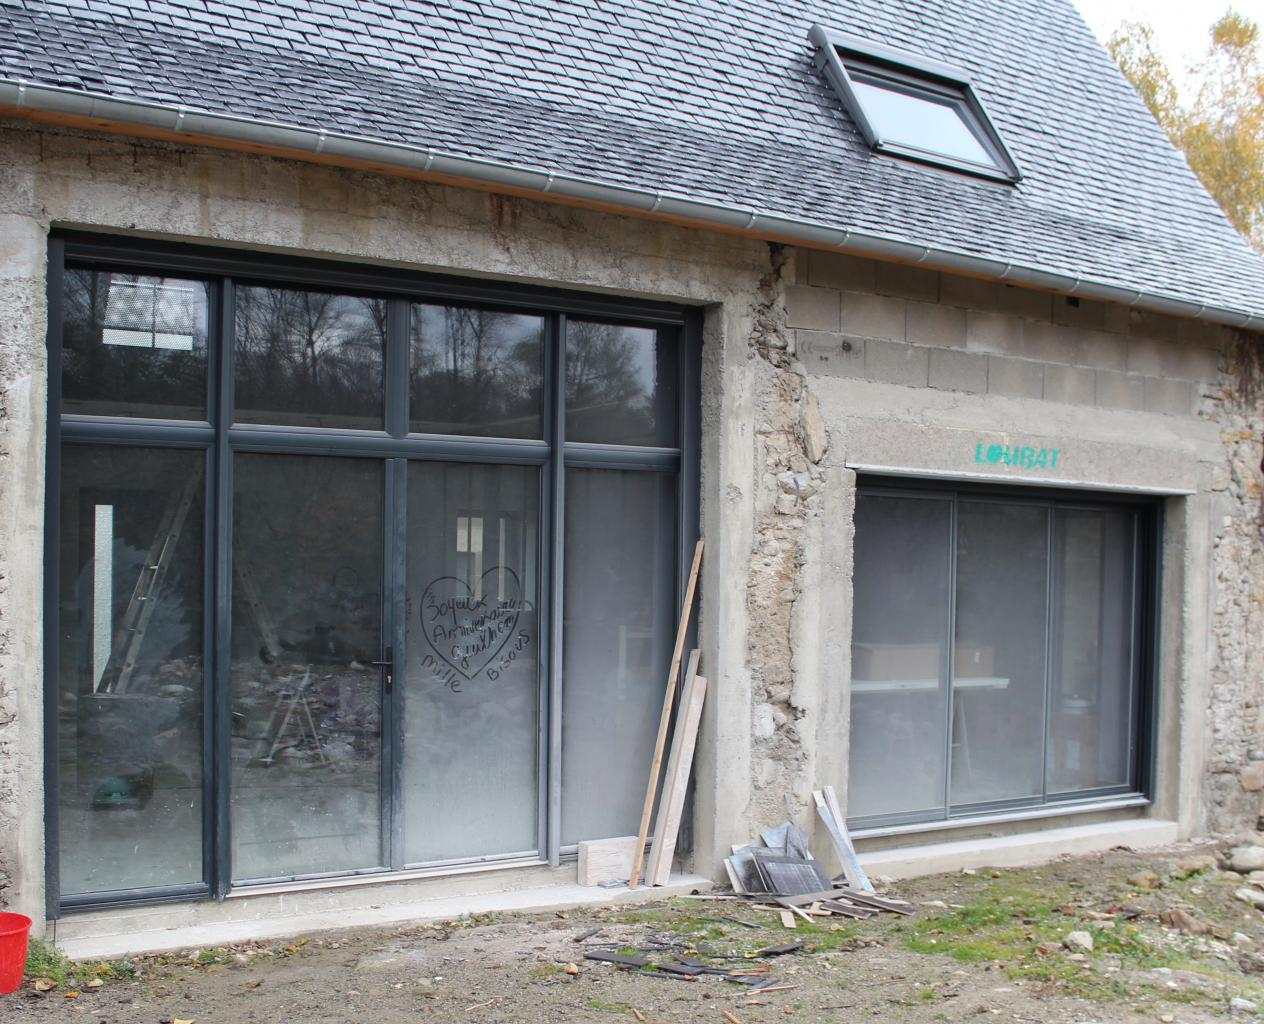 Menuiseries en aluminium (maison en rénovation)